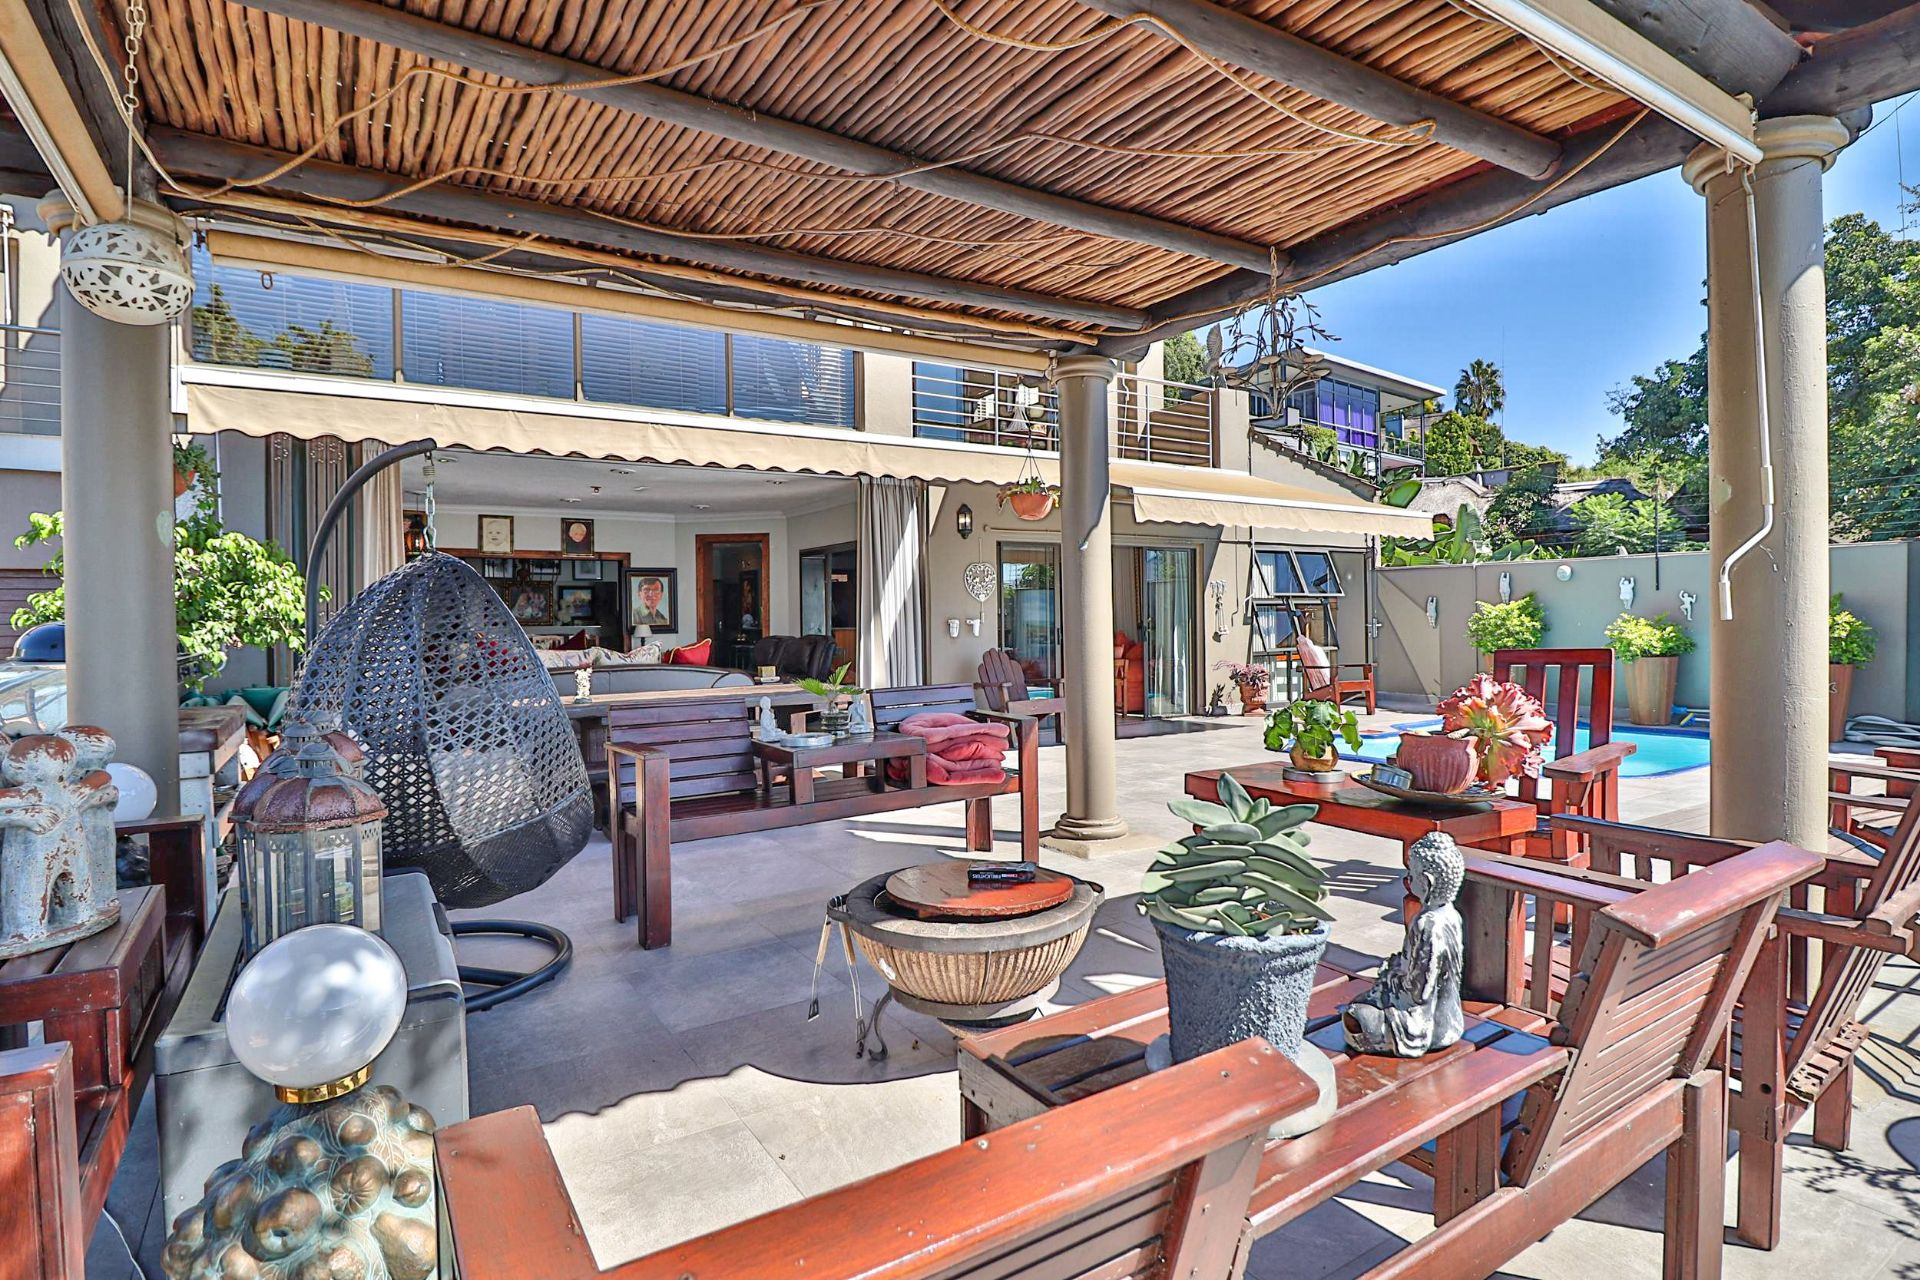 House in Kosmos Village - Patio leads off the lounge and dining area